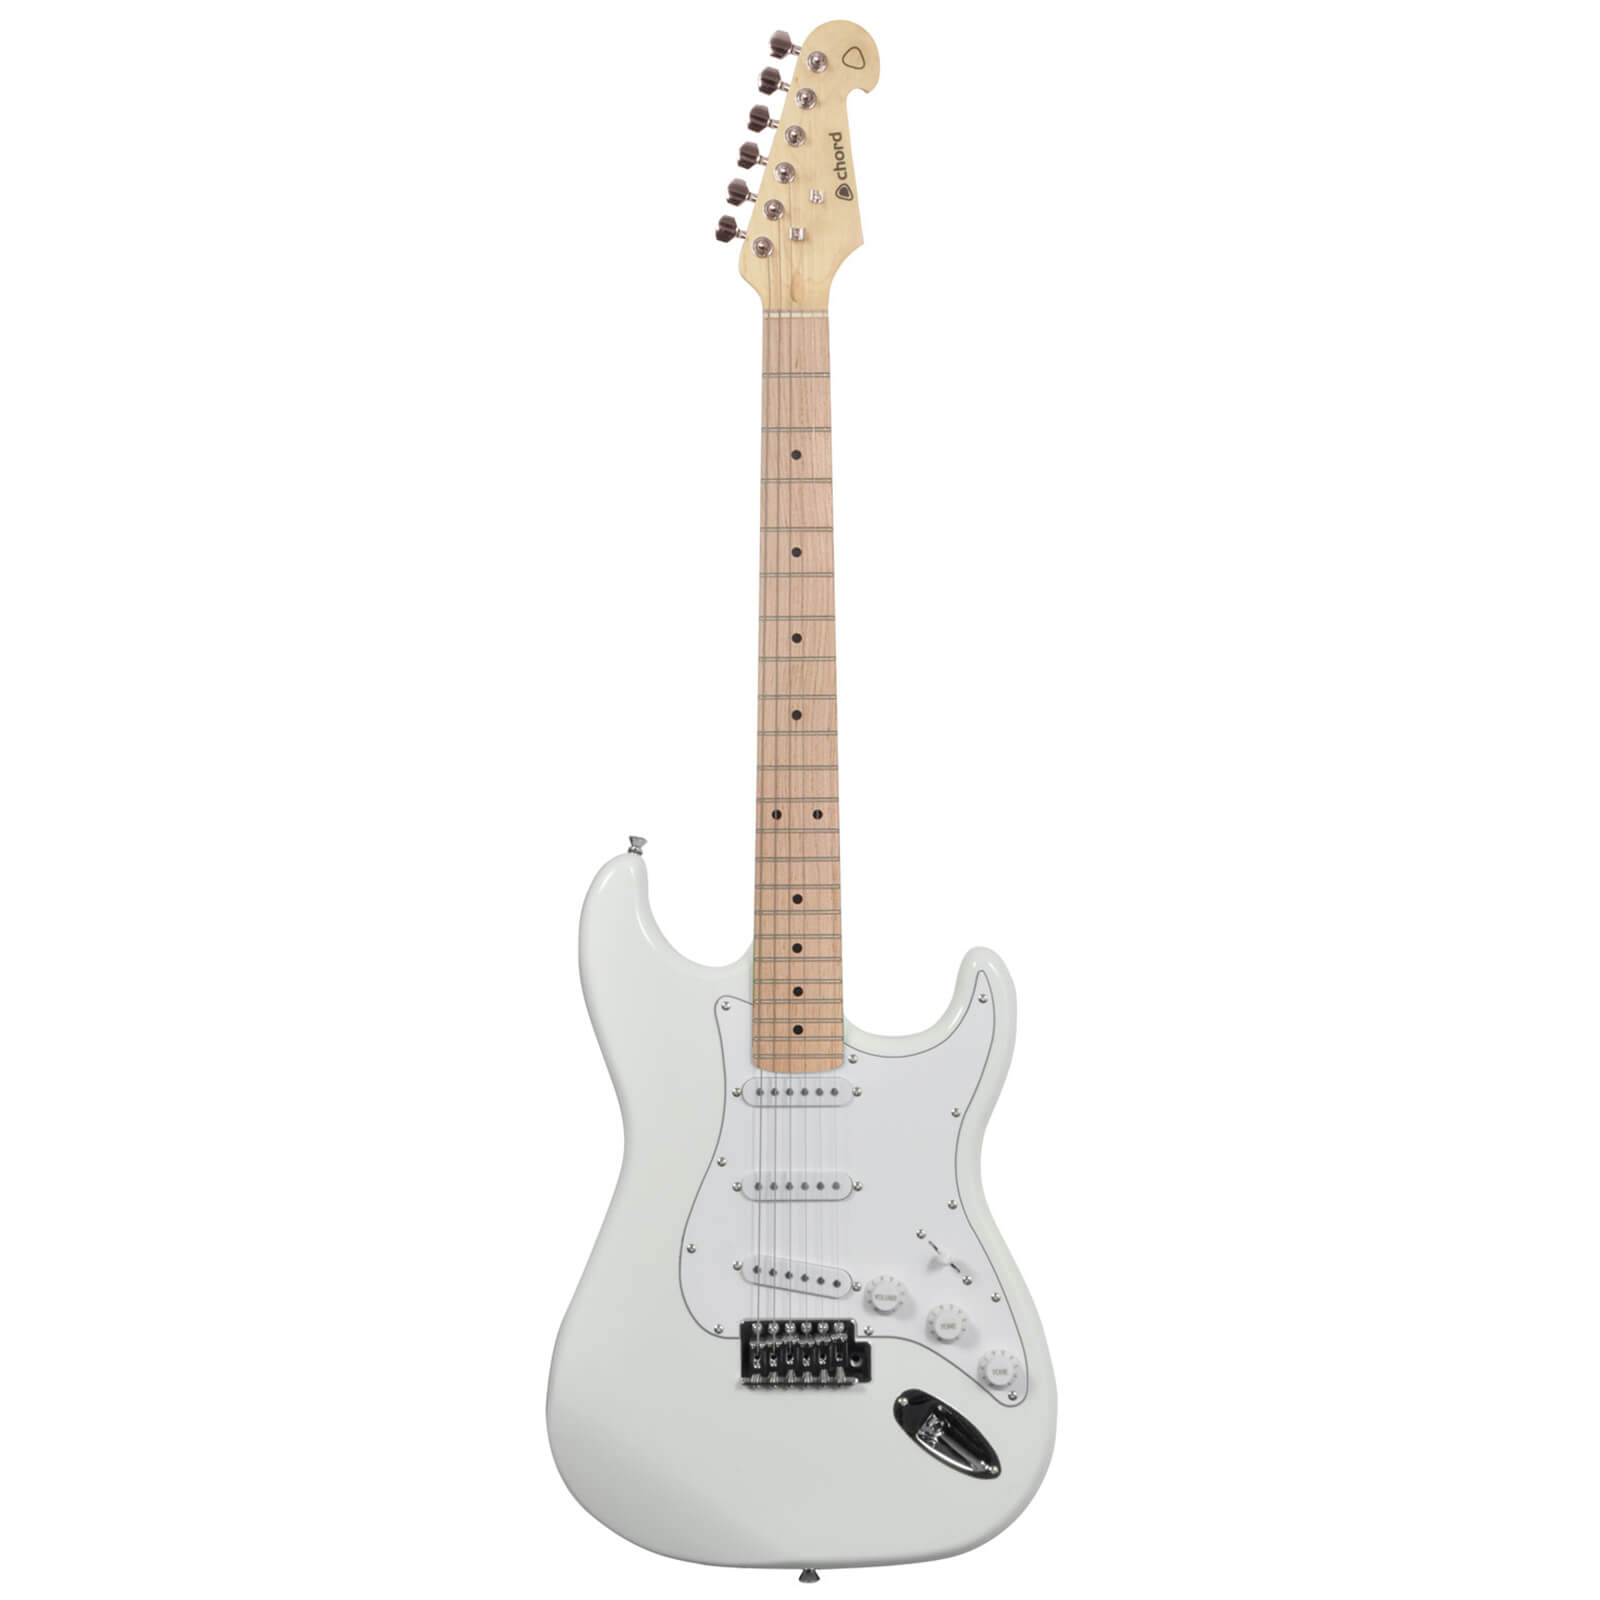 Chord CAL63M-ATW Electric Guitar with Maple Neck - Artic White